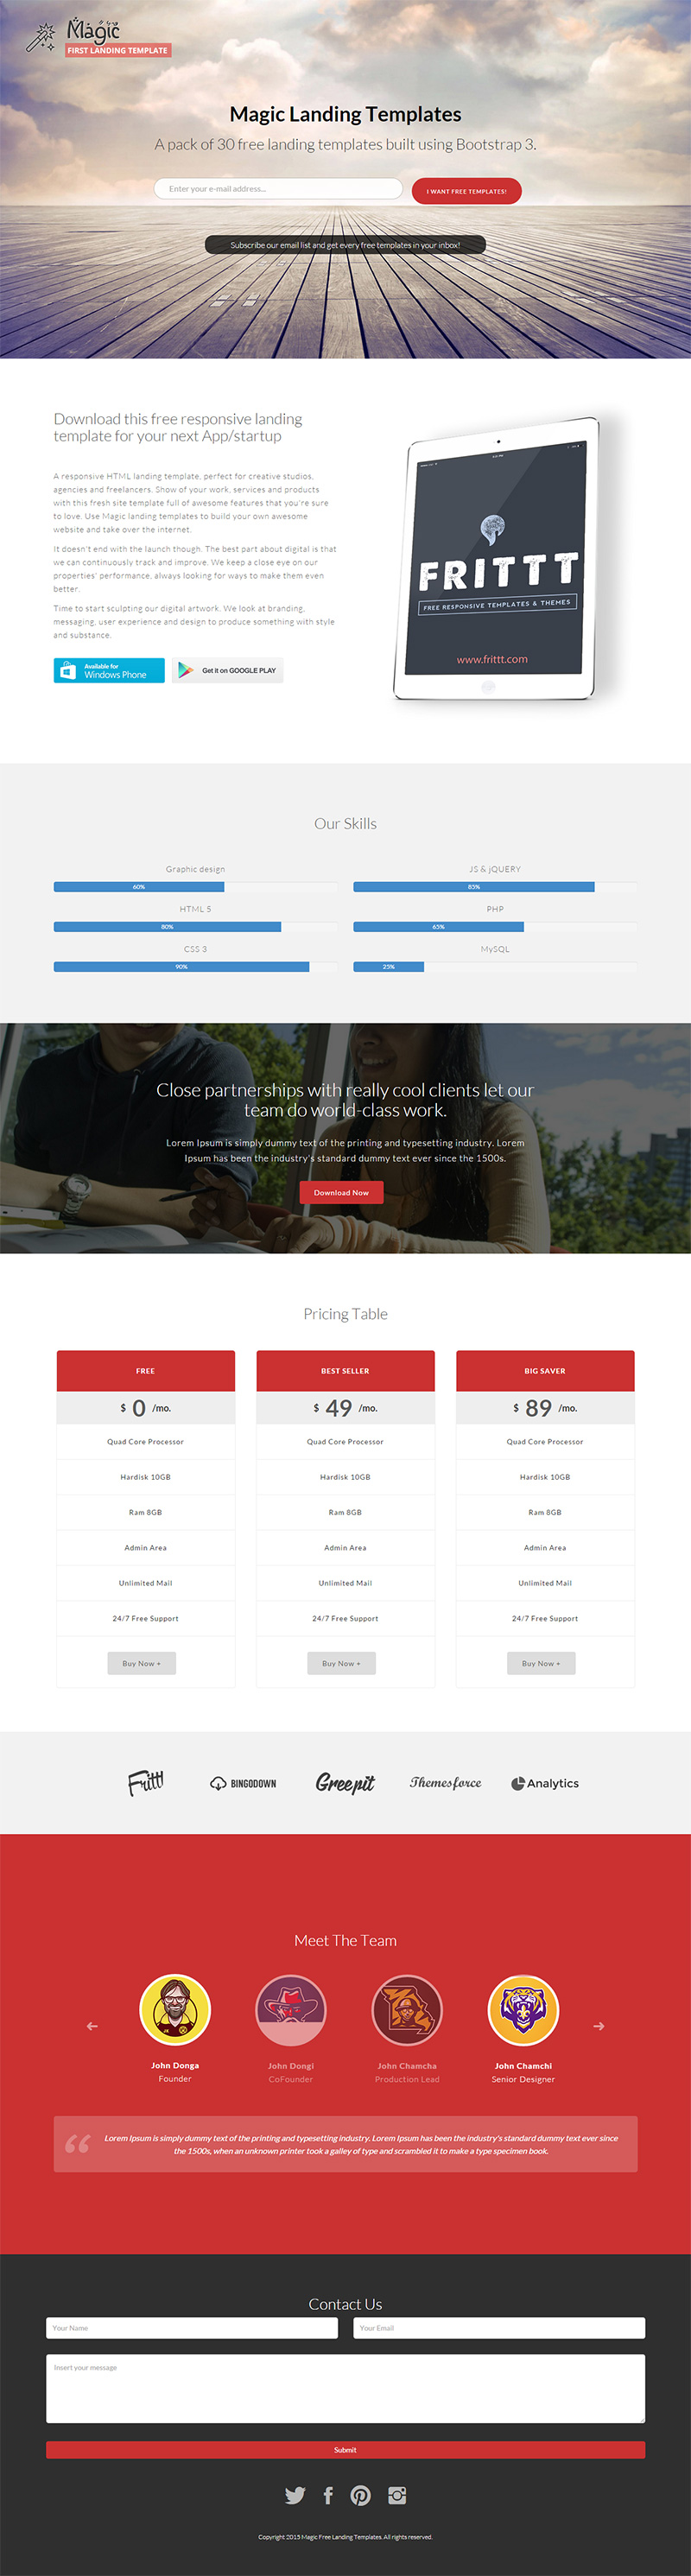 FLT is a robust landing page Bootstrap3 template which provides a ...